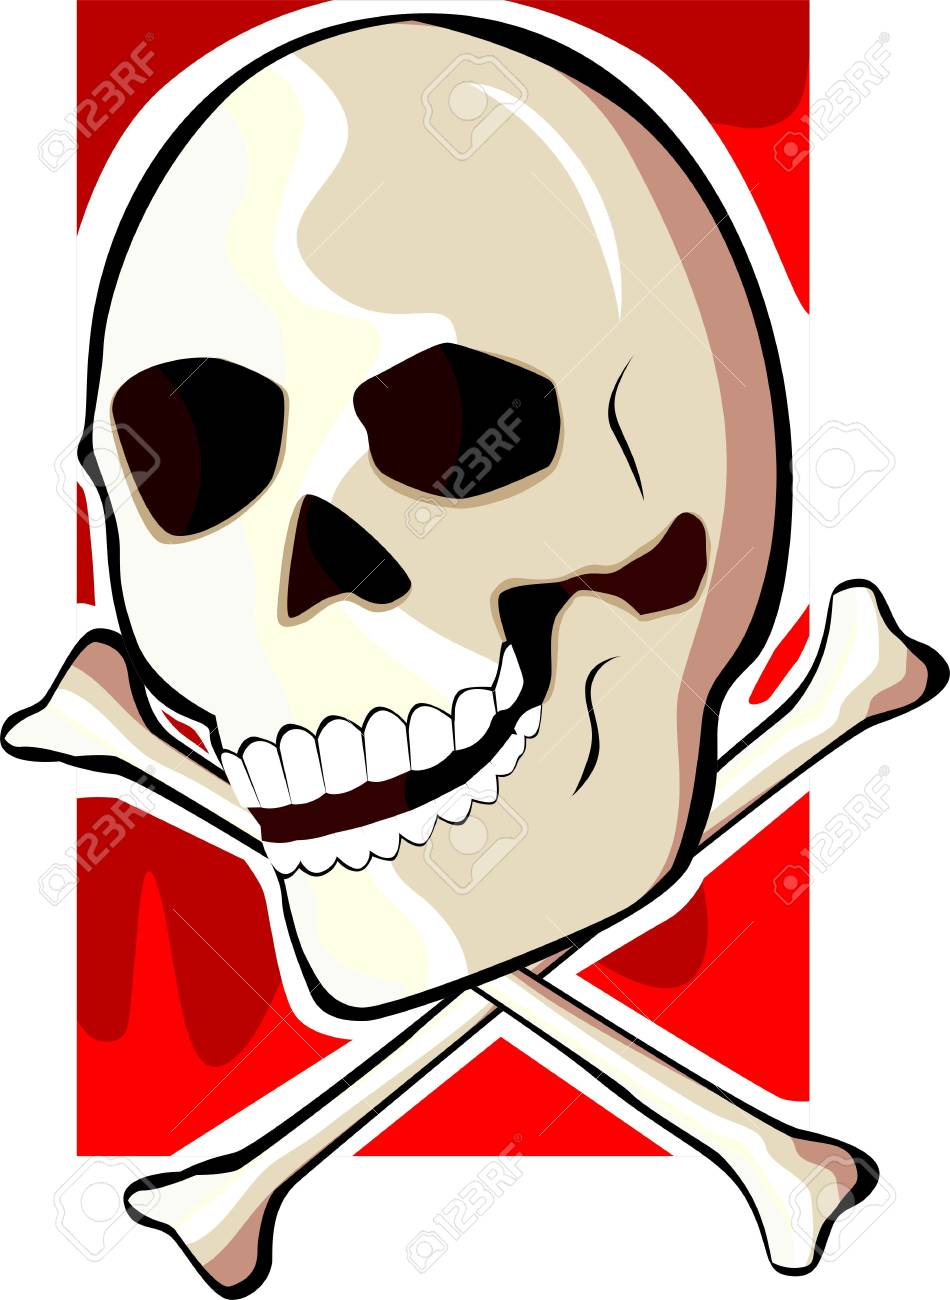 Illustration of a crossbones and devil Stock Photo - 3881936